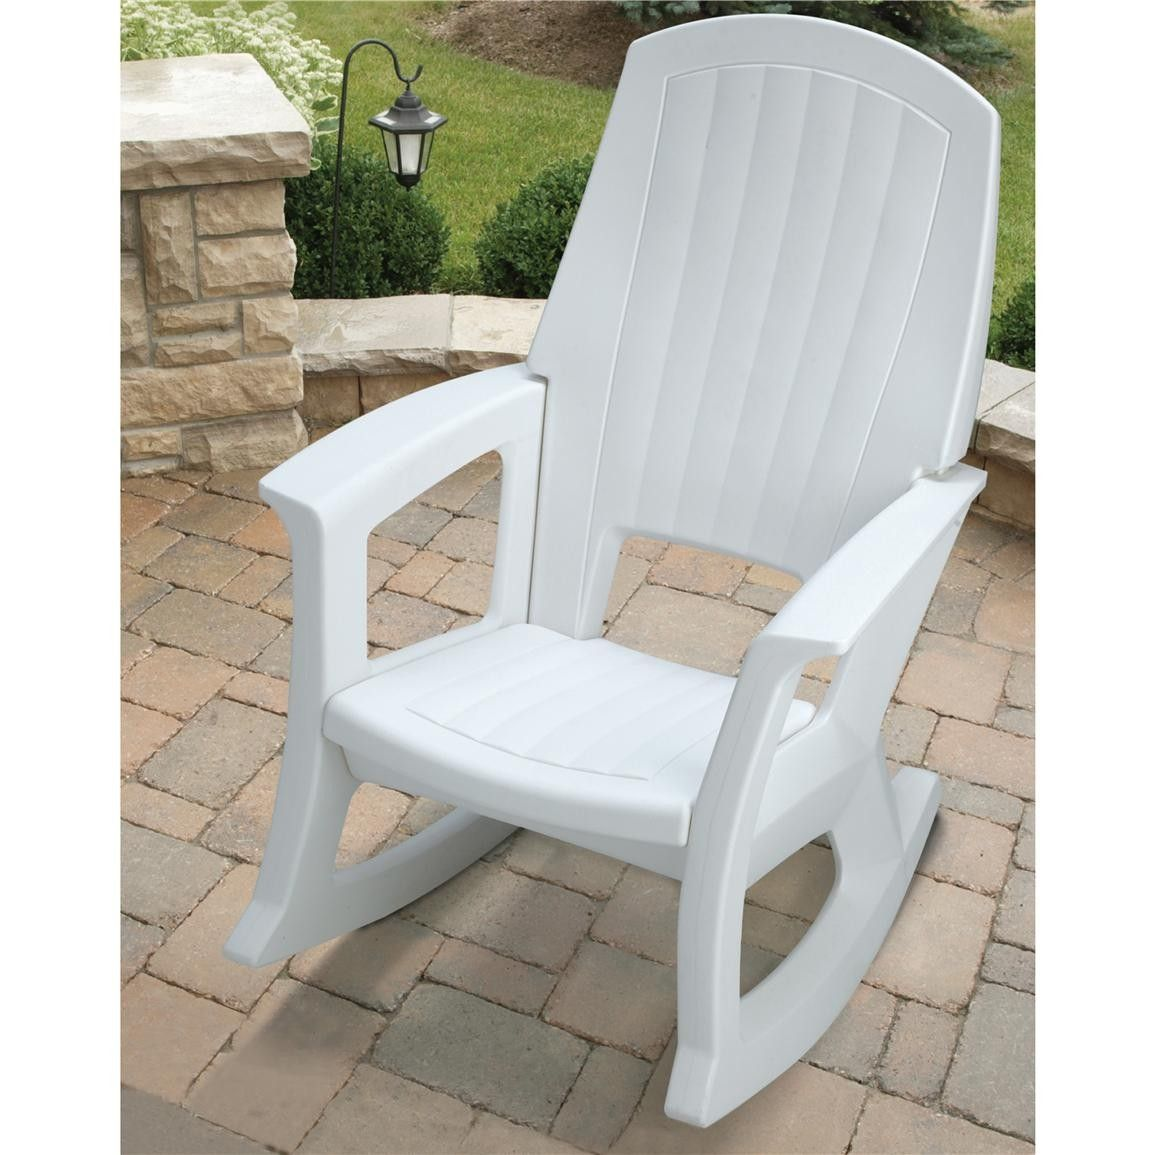 semco plastics white resin outdoor patio rocking chair semw rural king